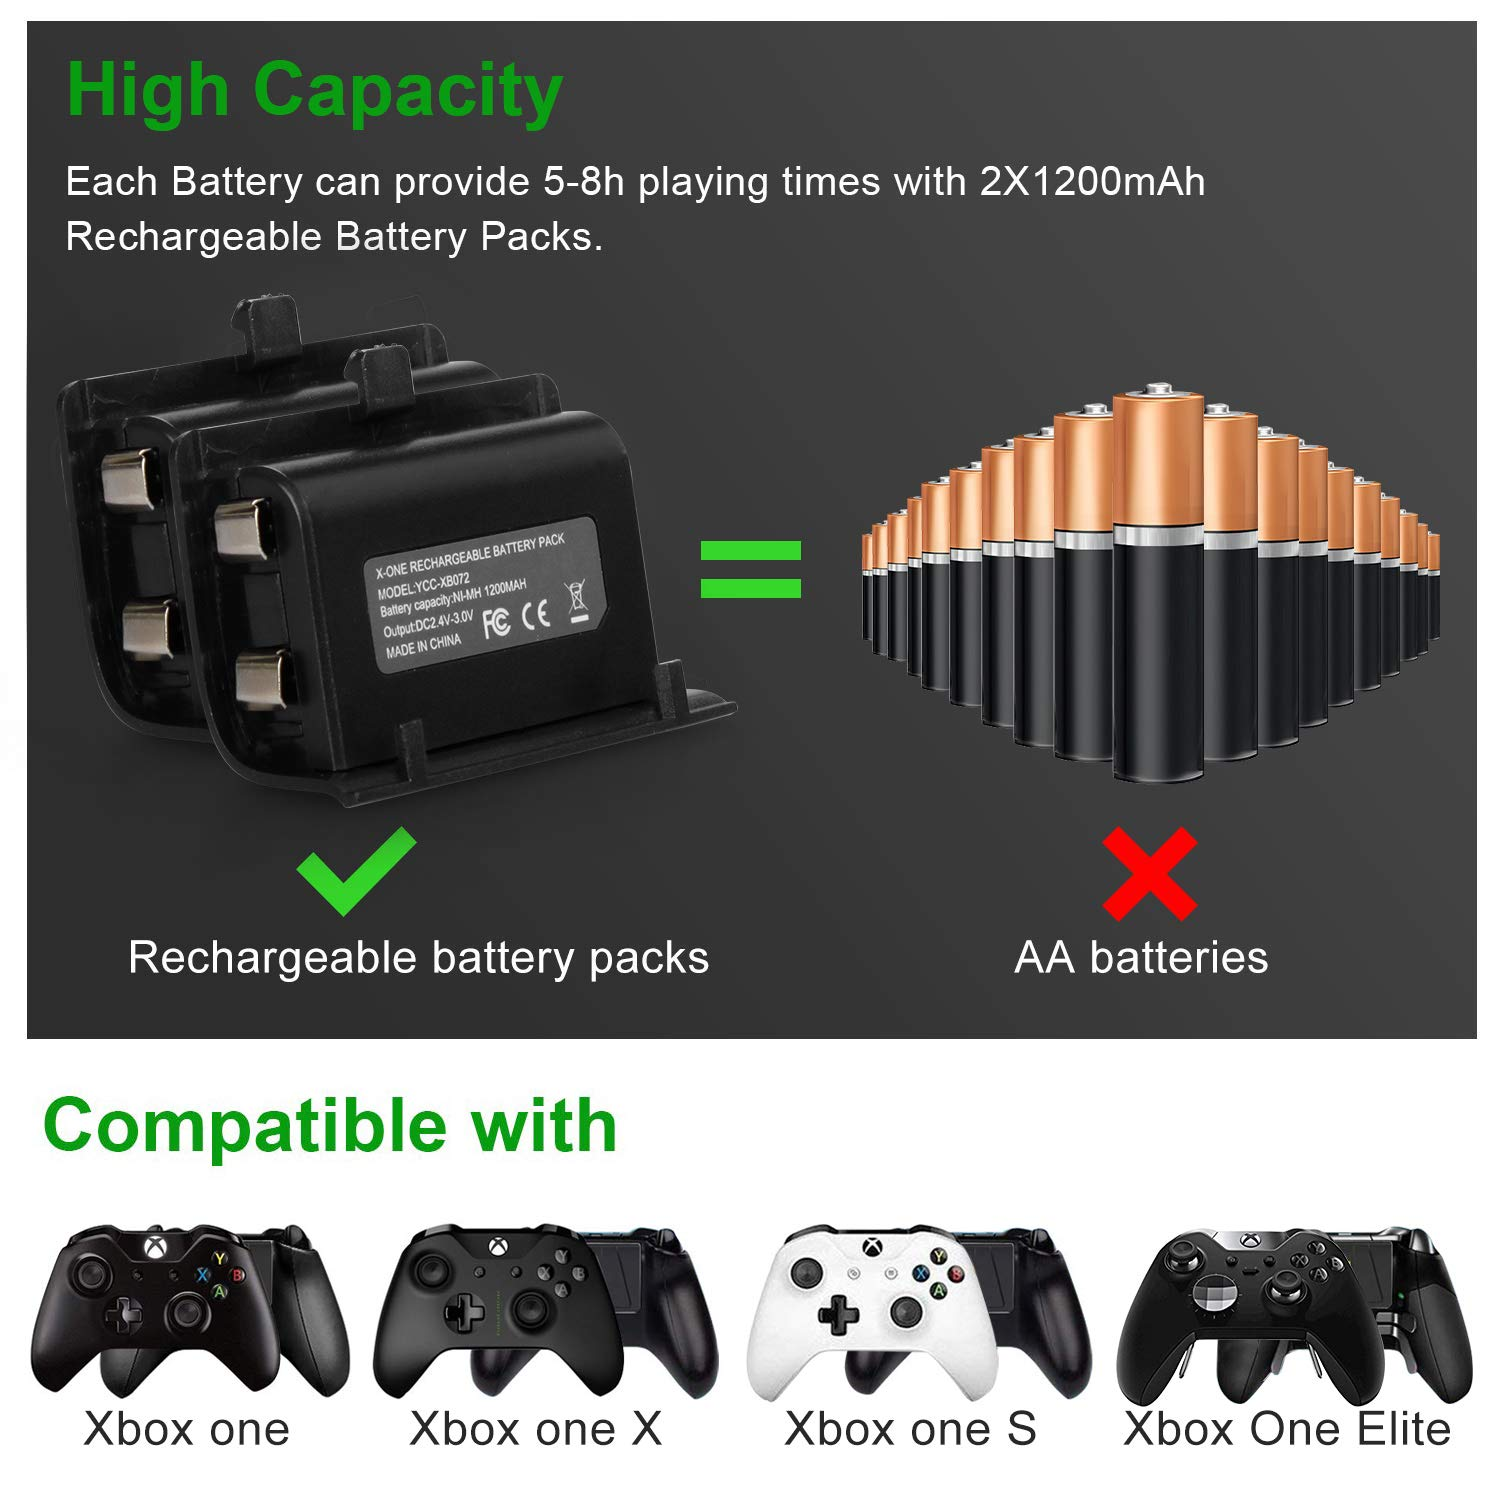 Xbox One Controller Charger,[Dual Slot]Xbox One/One S/One X Controller Fast Charging Station Dock with 2x1200 mAh Rechargeable Batteries Packs for Xbox Wireless Controller